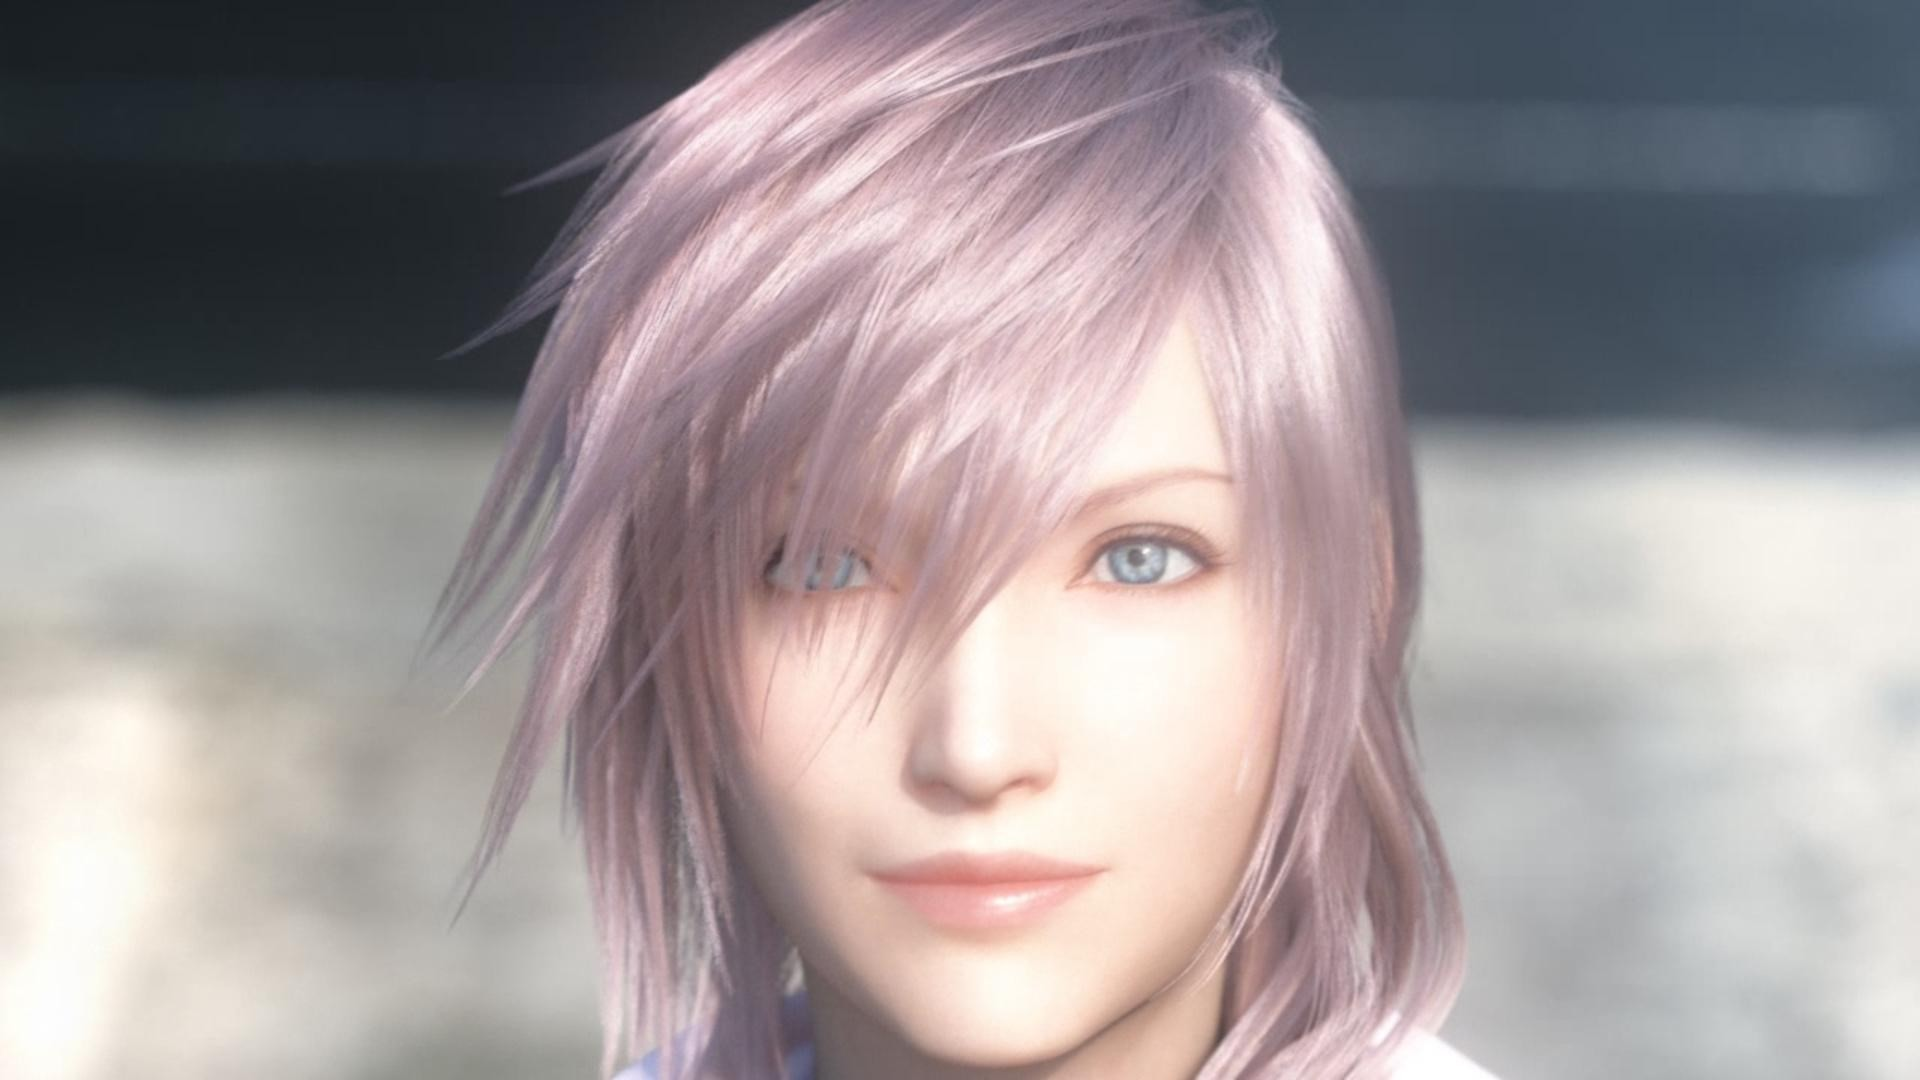 lightning returns final fantasy xiii wallpapers 1080p high quality, 147 kB  – Commodore Brian